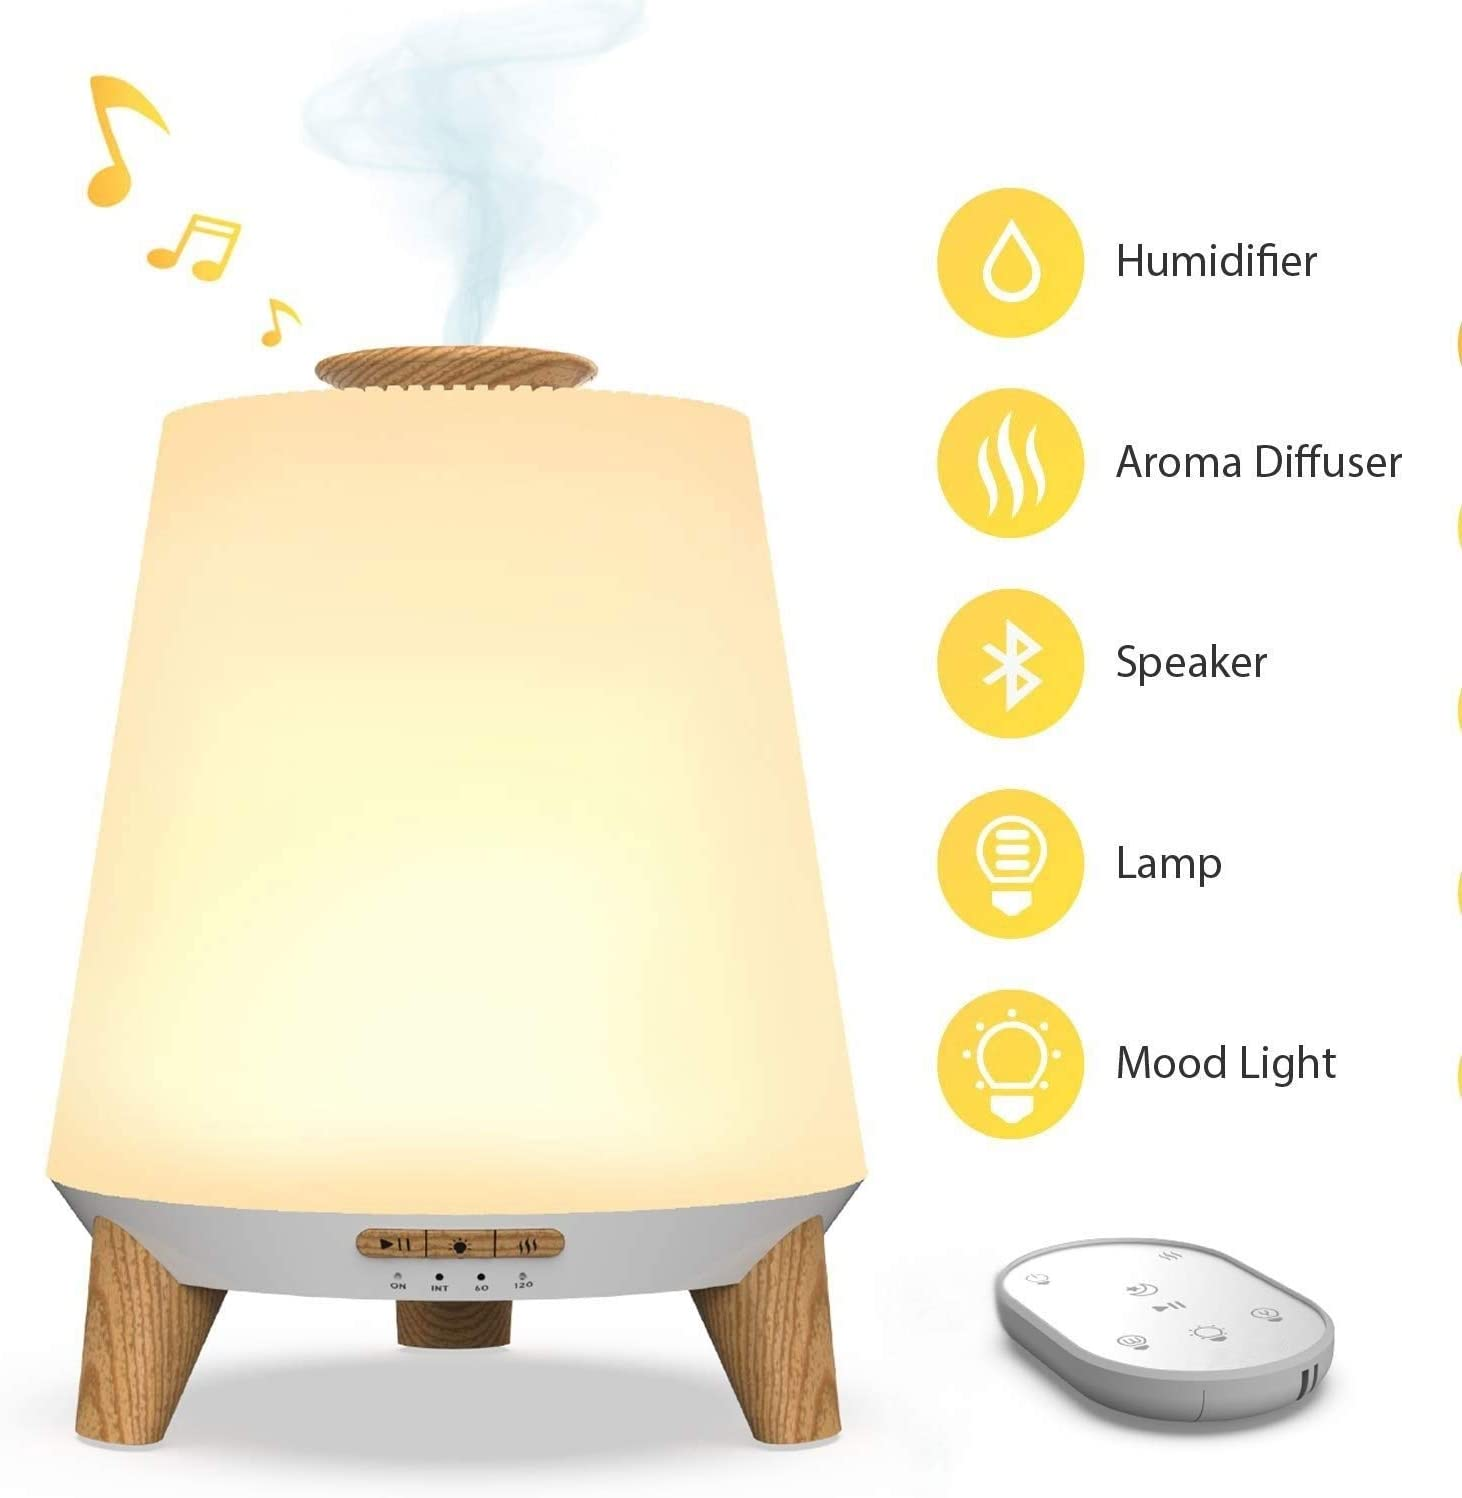 Bedroom Mini Humidifier Bedroom Ultrasonic Air Humidifier (Cool Fog and Aromatherapy Machine) with Remote Control 7 Color Remote Control Bluetooth Lullaby and White Noise Children Night Light